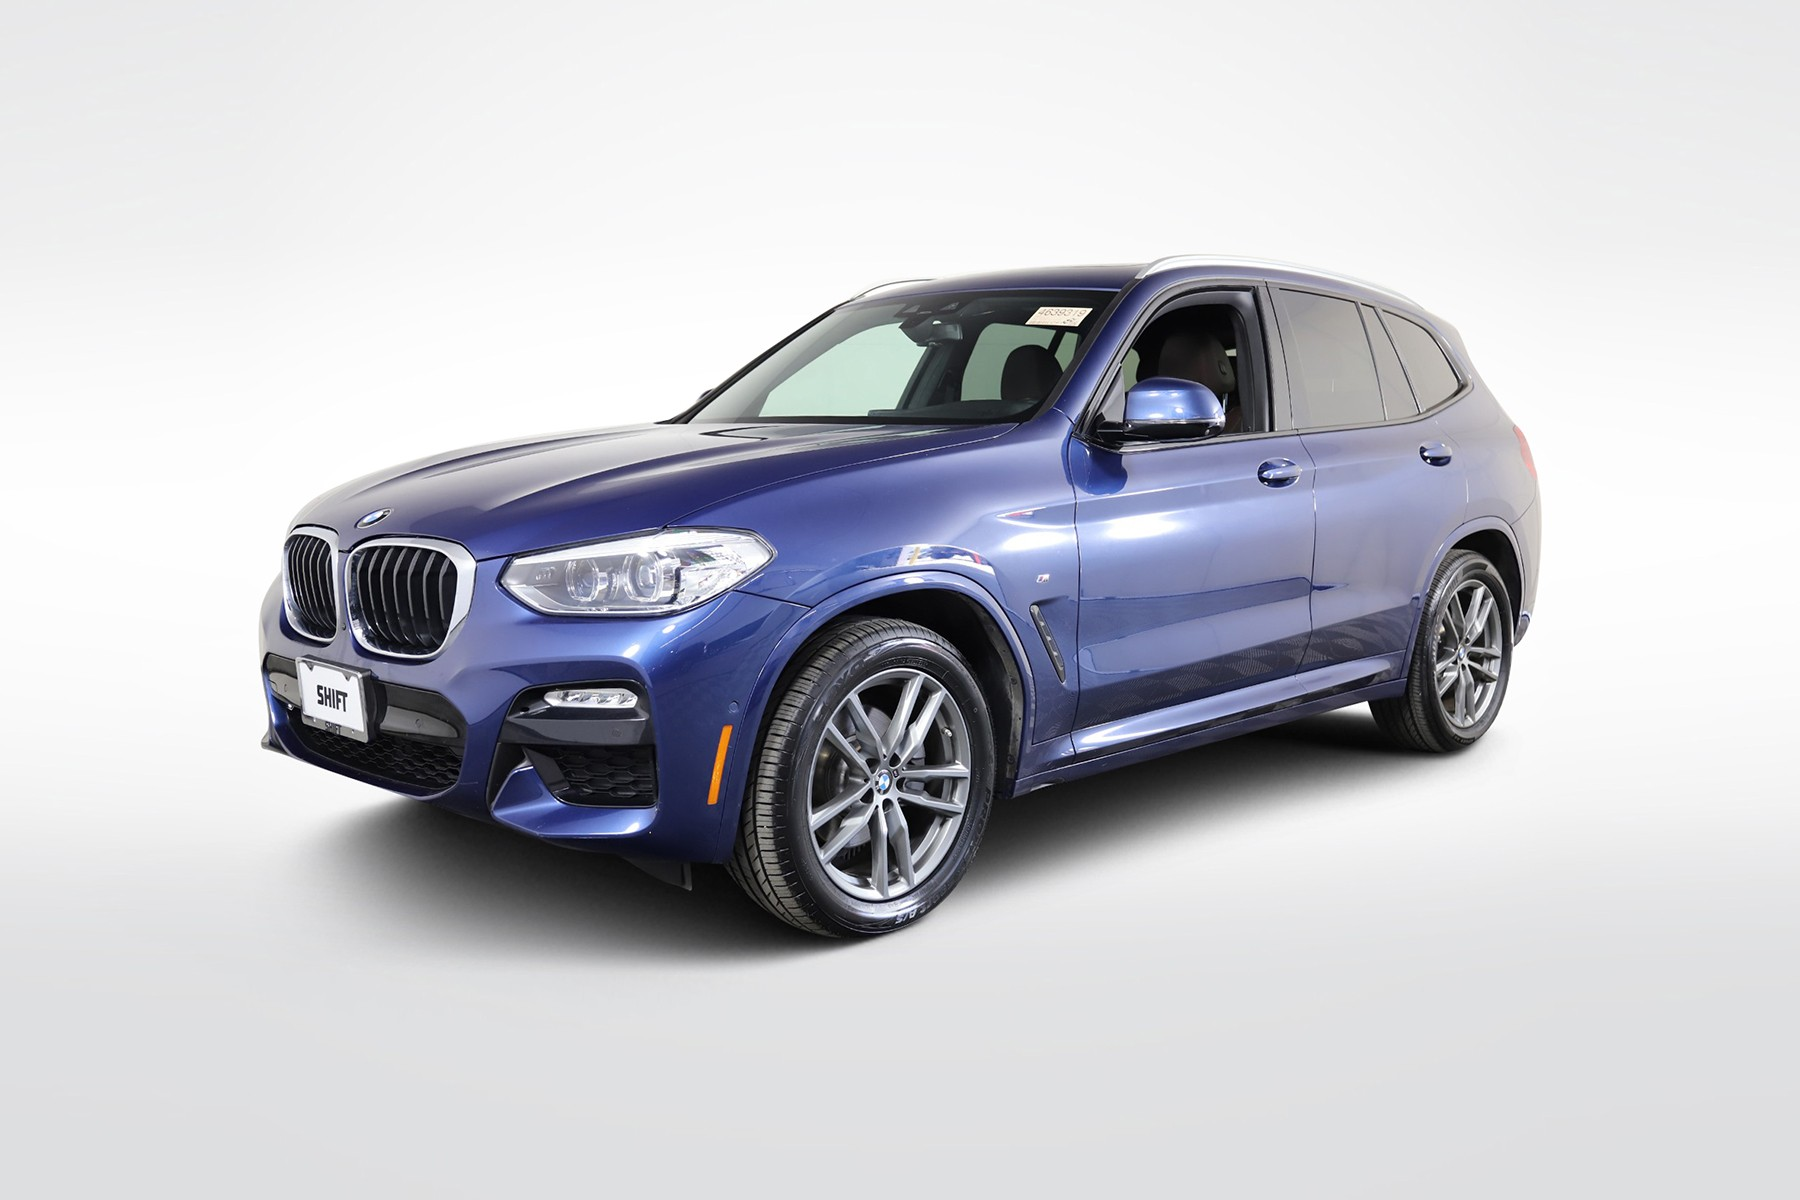 2019 BMW X3 xDrive30i (from $38,500)